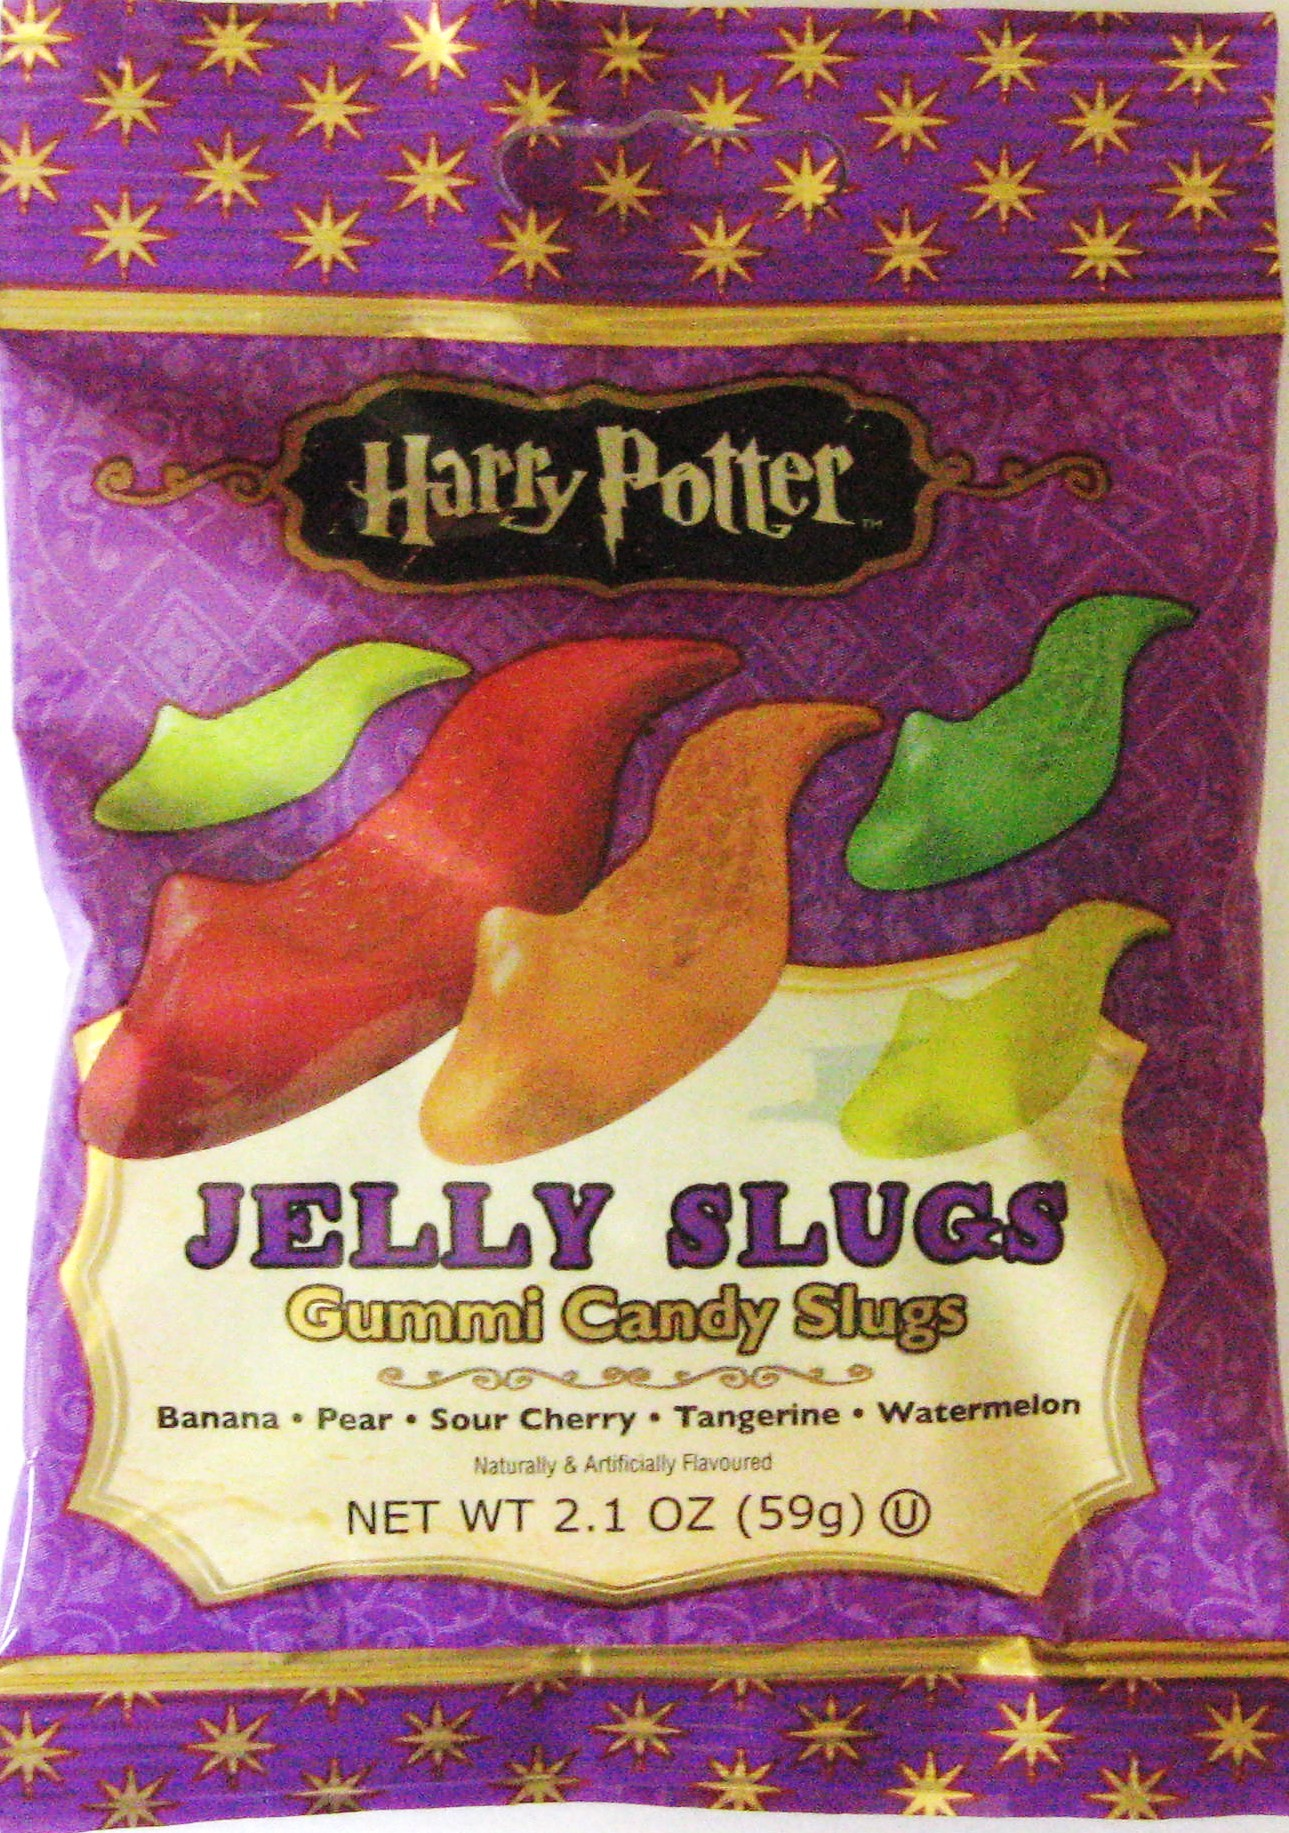 Harry Potter™ by Jelly Belly - Jelly Slugs Слизни мармеладные Хеллоуин Гарри Поттер 54 гр